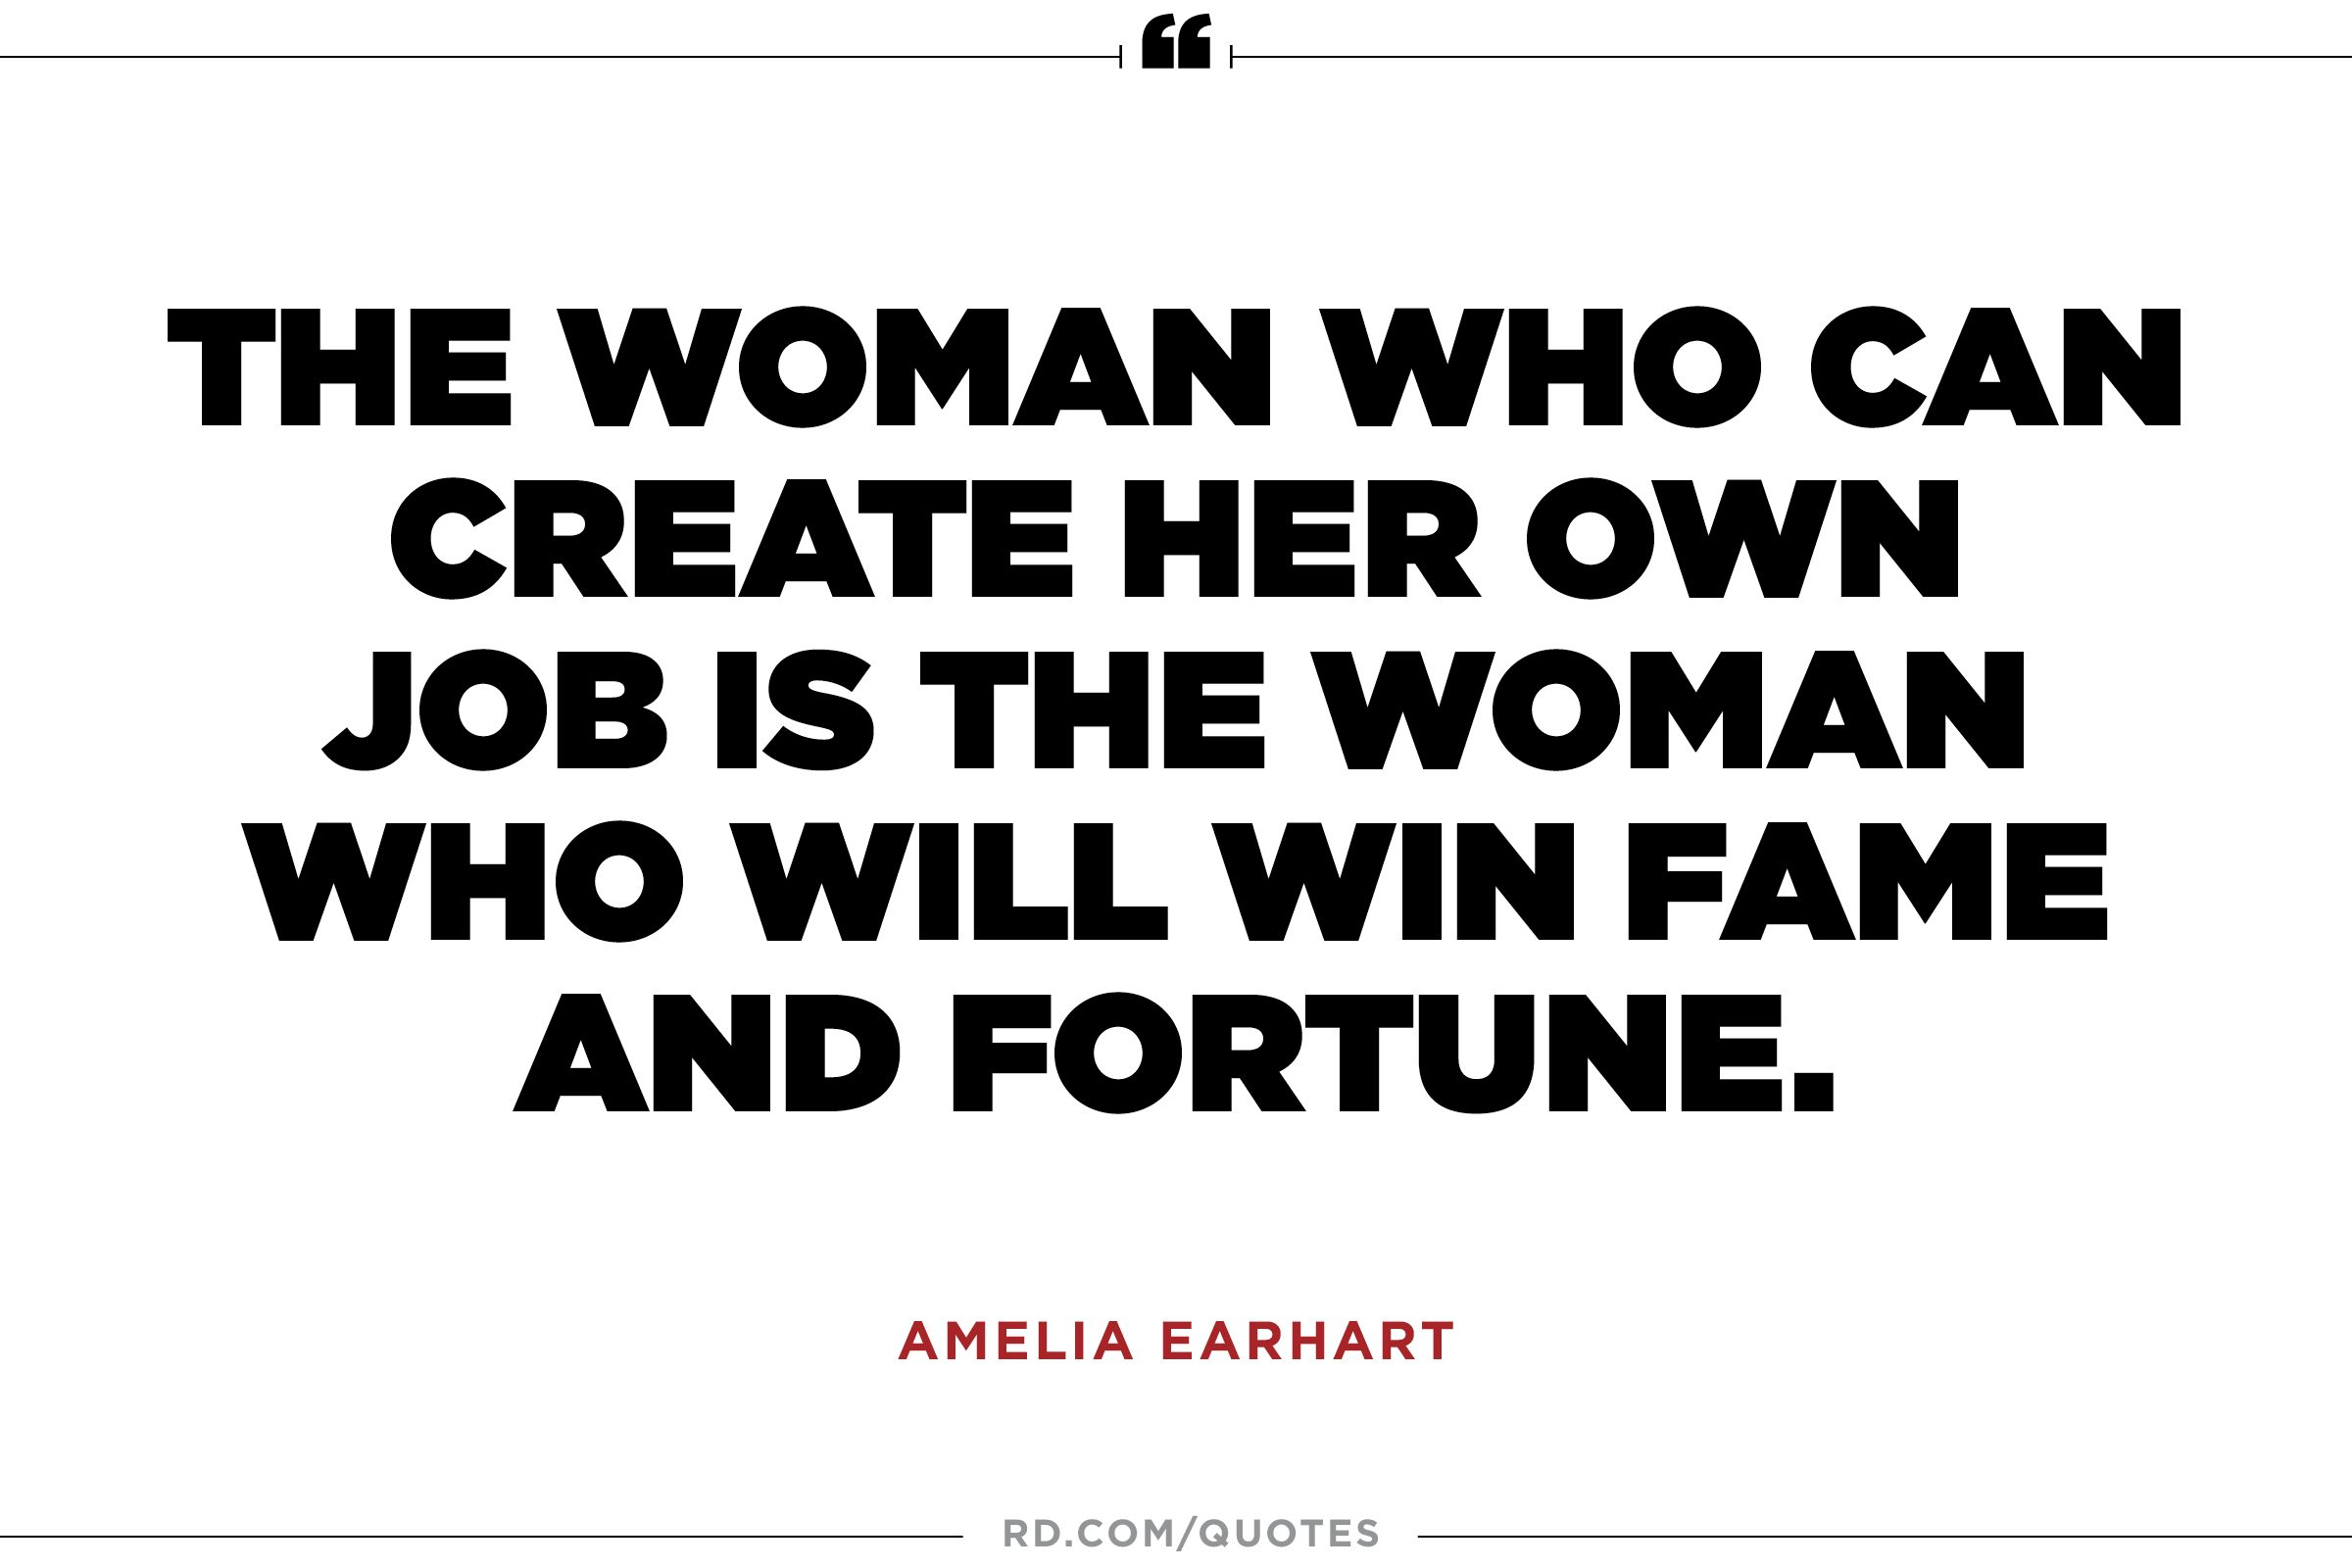 Empowering Women Quotes 10 Amelia Earhart Quotes To Propel You To Greatness  Reader's Digest